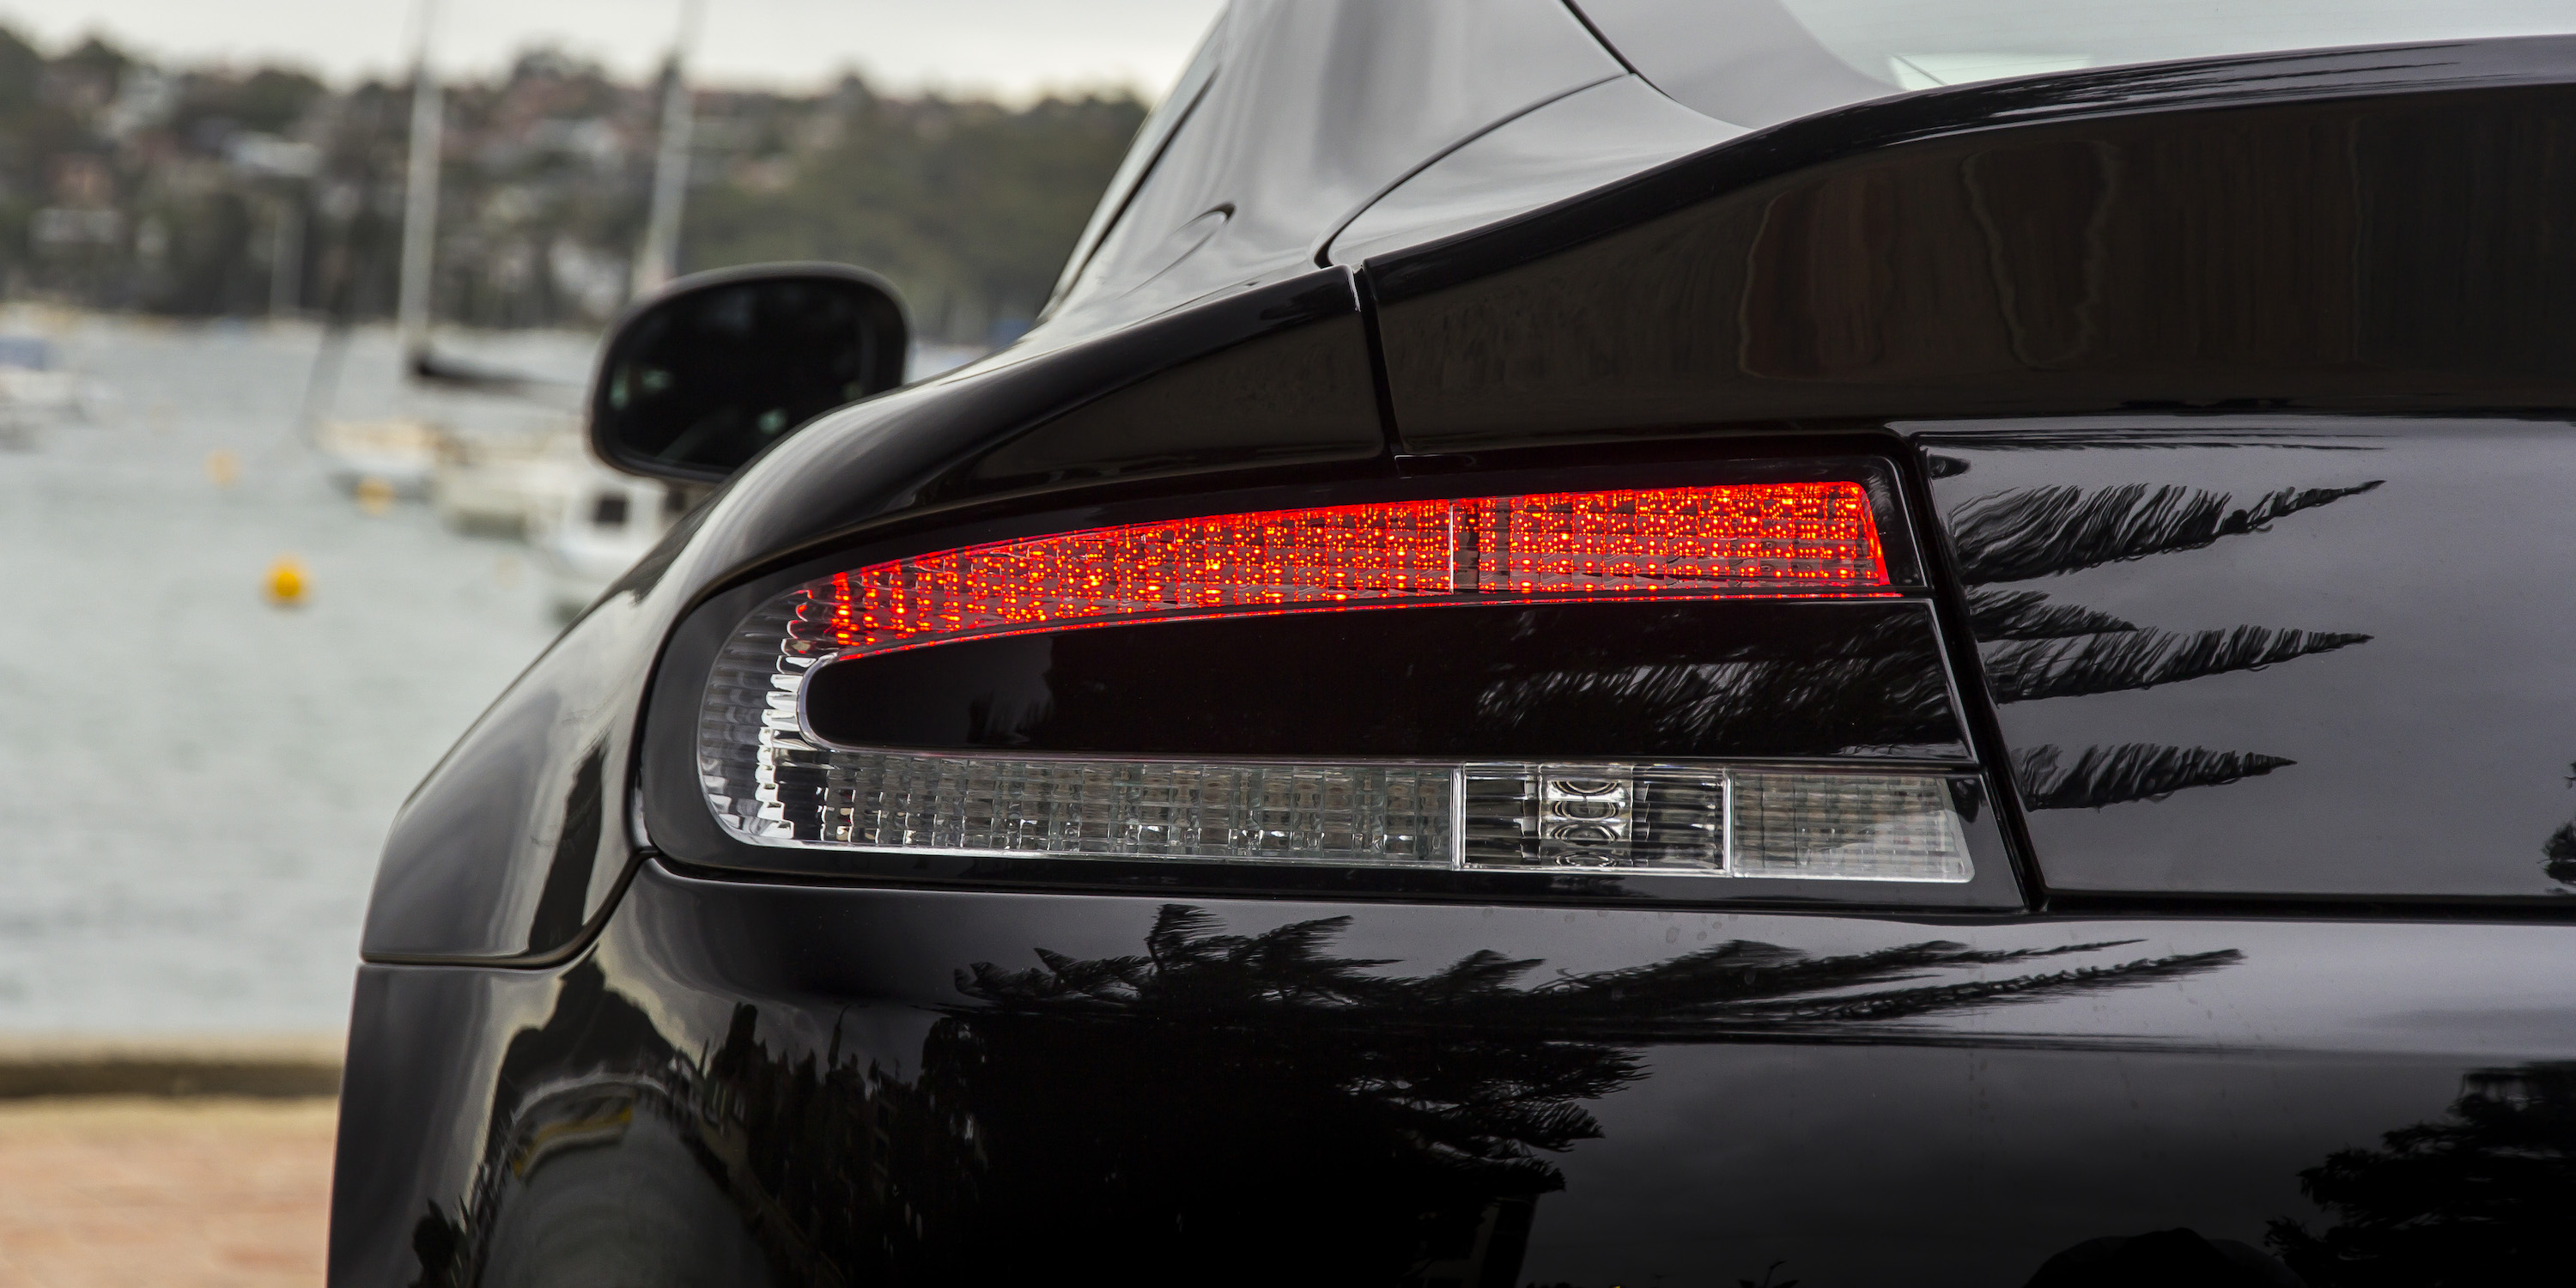 2016 Aston Martin Vantage Gt Left Taillight (Photo 15 of 25)